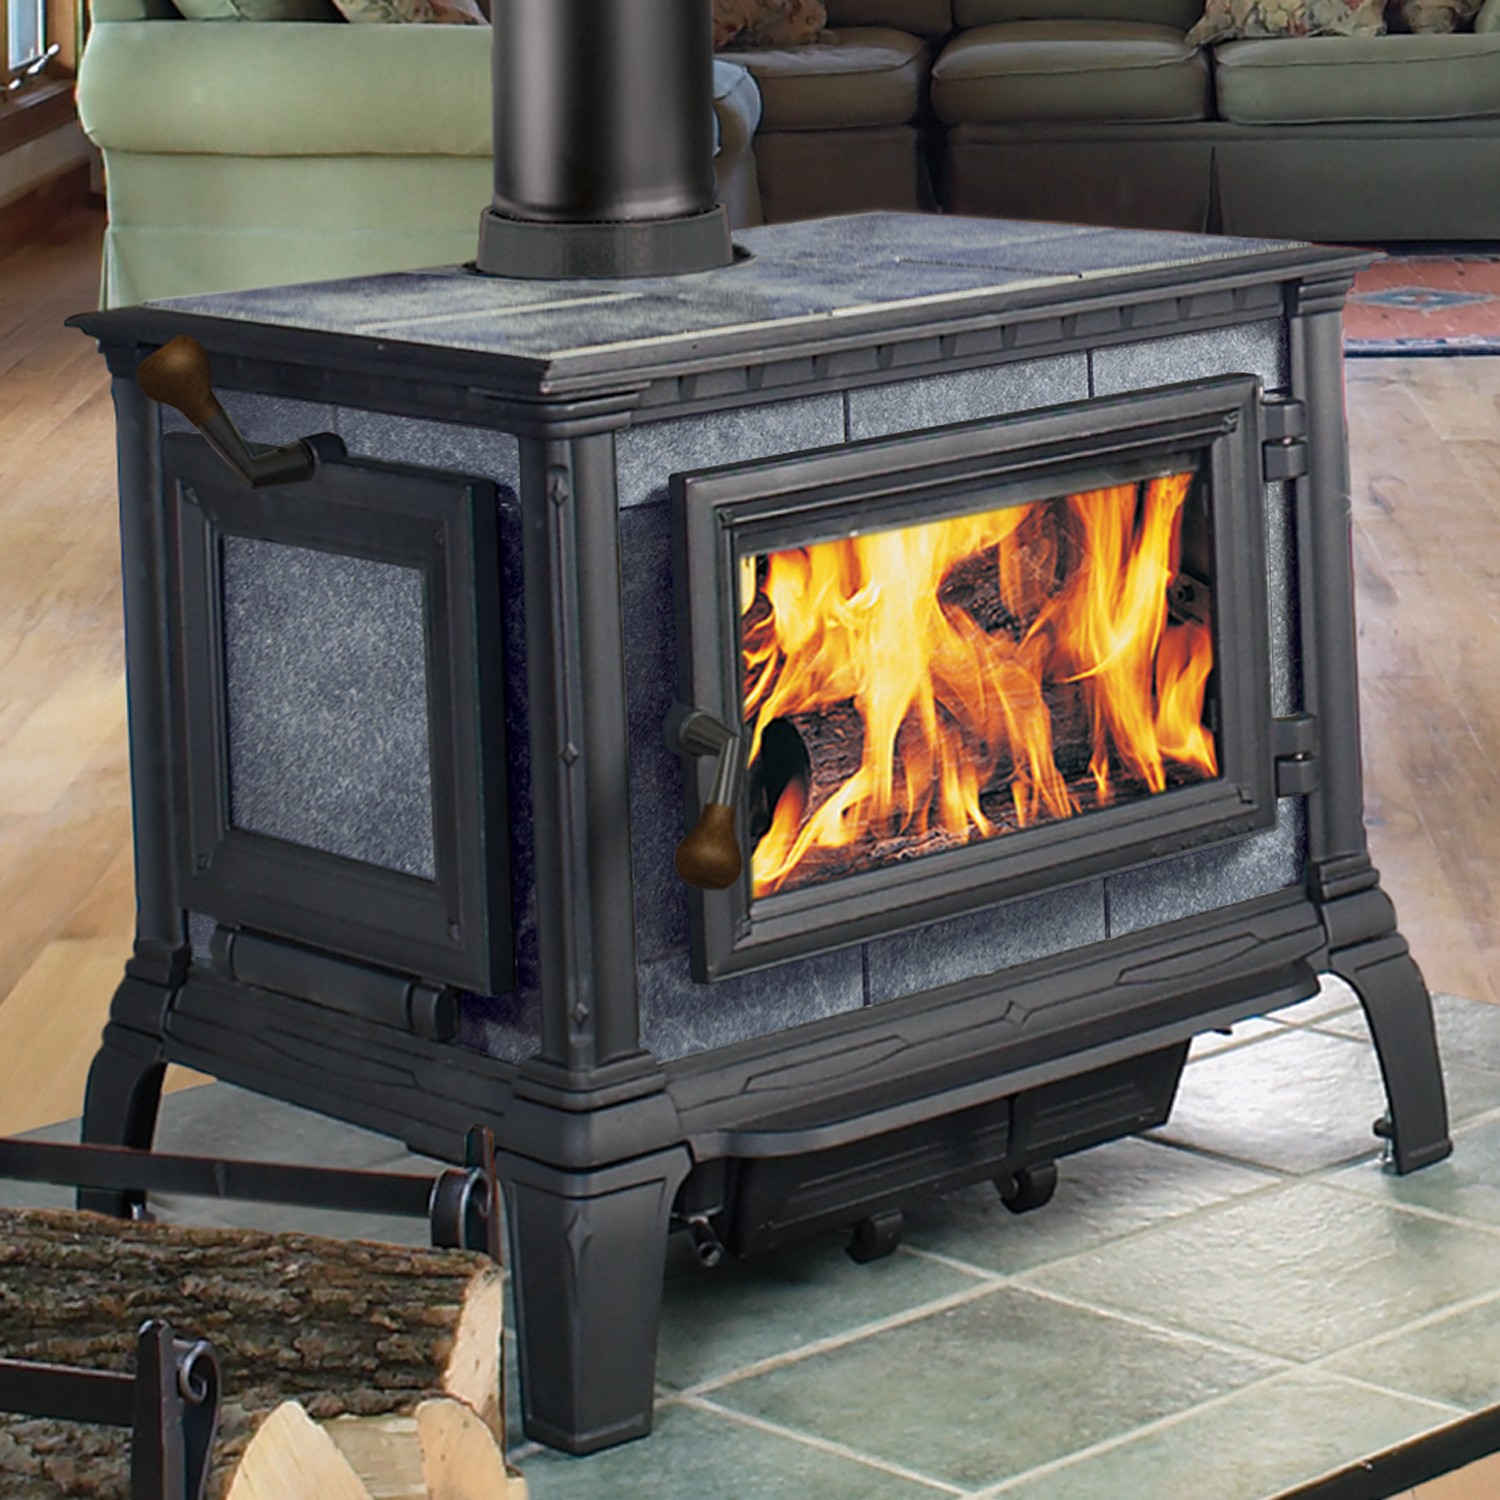 Hearthstone Wood Burning Stove WB Designs - Hearthstone Wood Burning Stove WB Designs